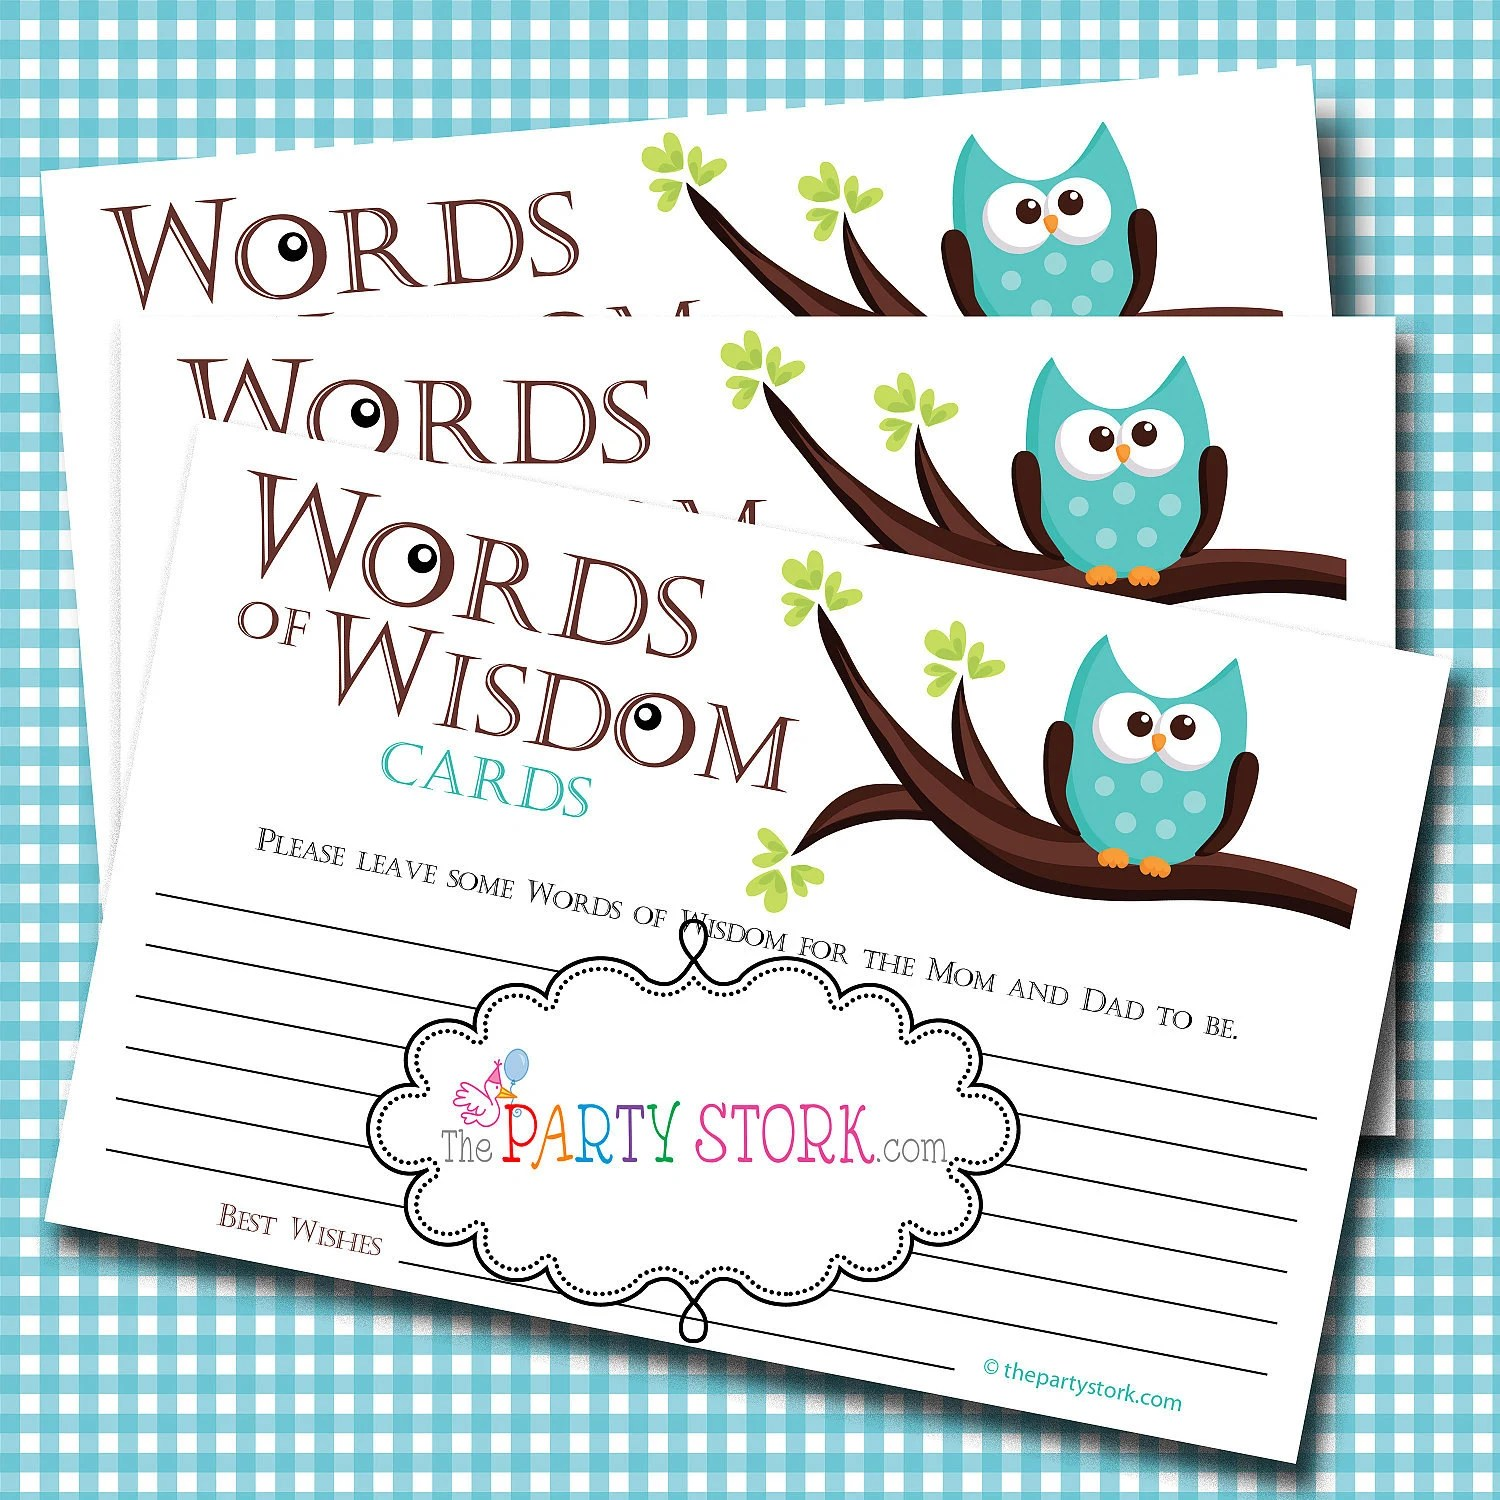 Words Of Wisdom Advice Cards Owl Baby Shower Games Baby